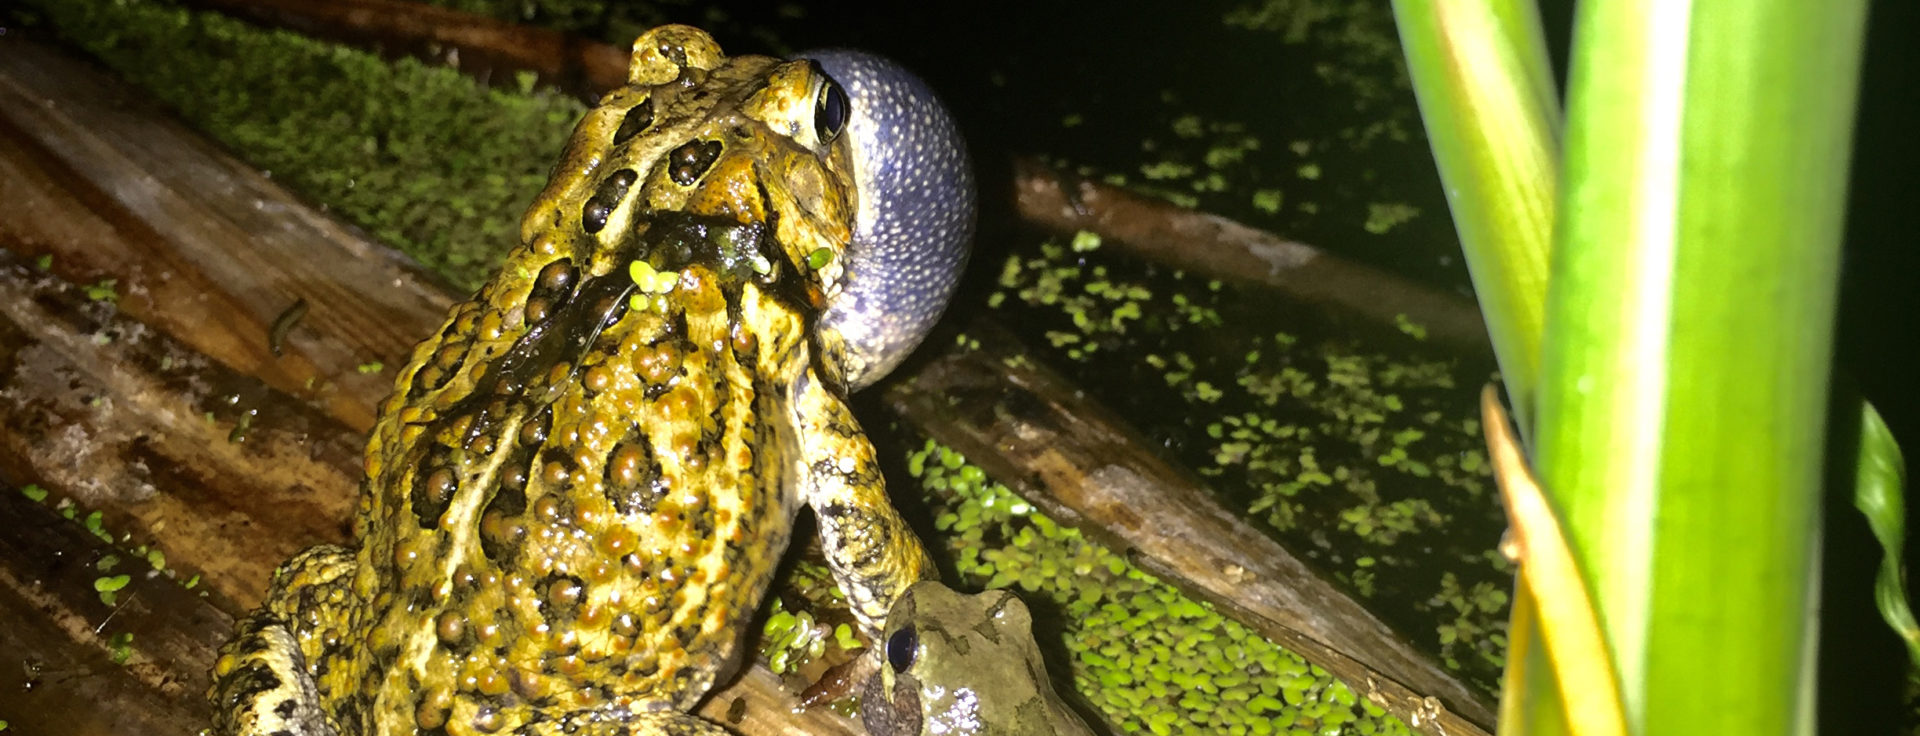 American toad an cope's grey treefrog overlooking a pond together.